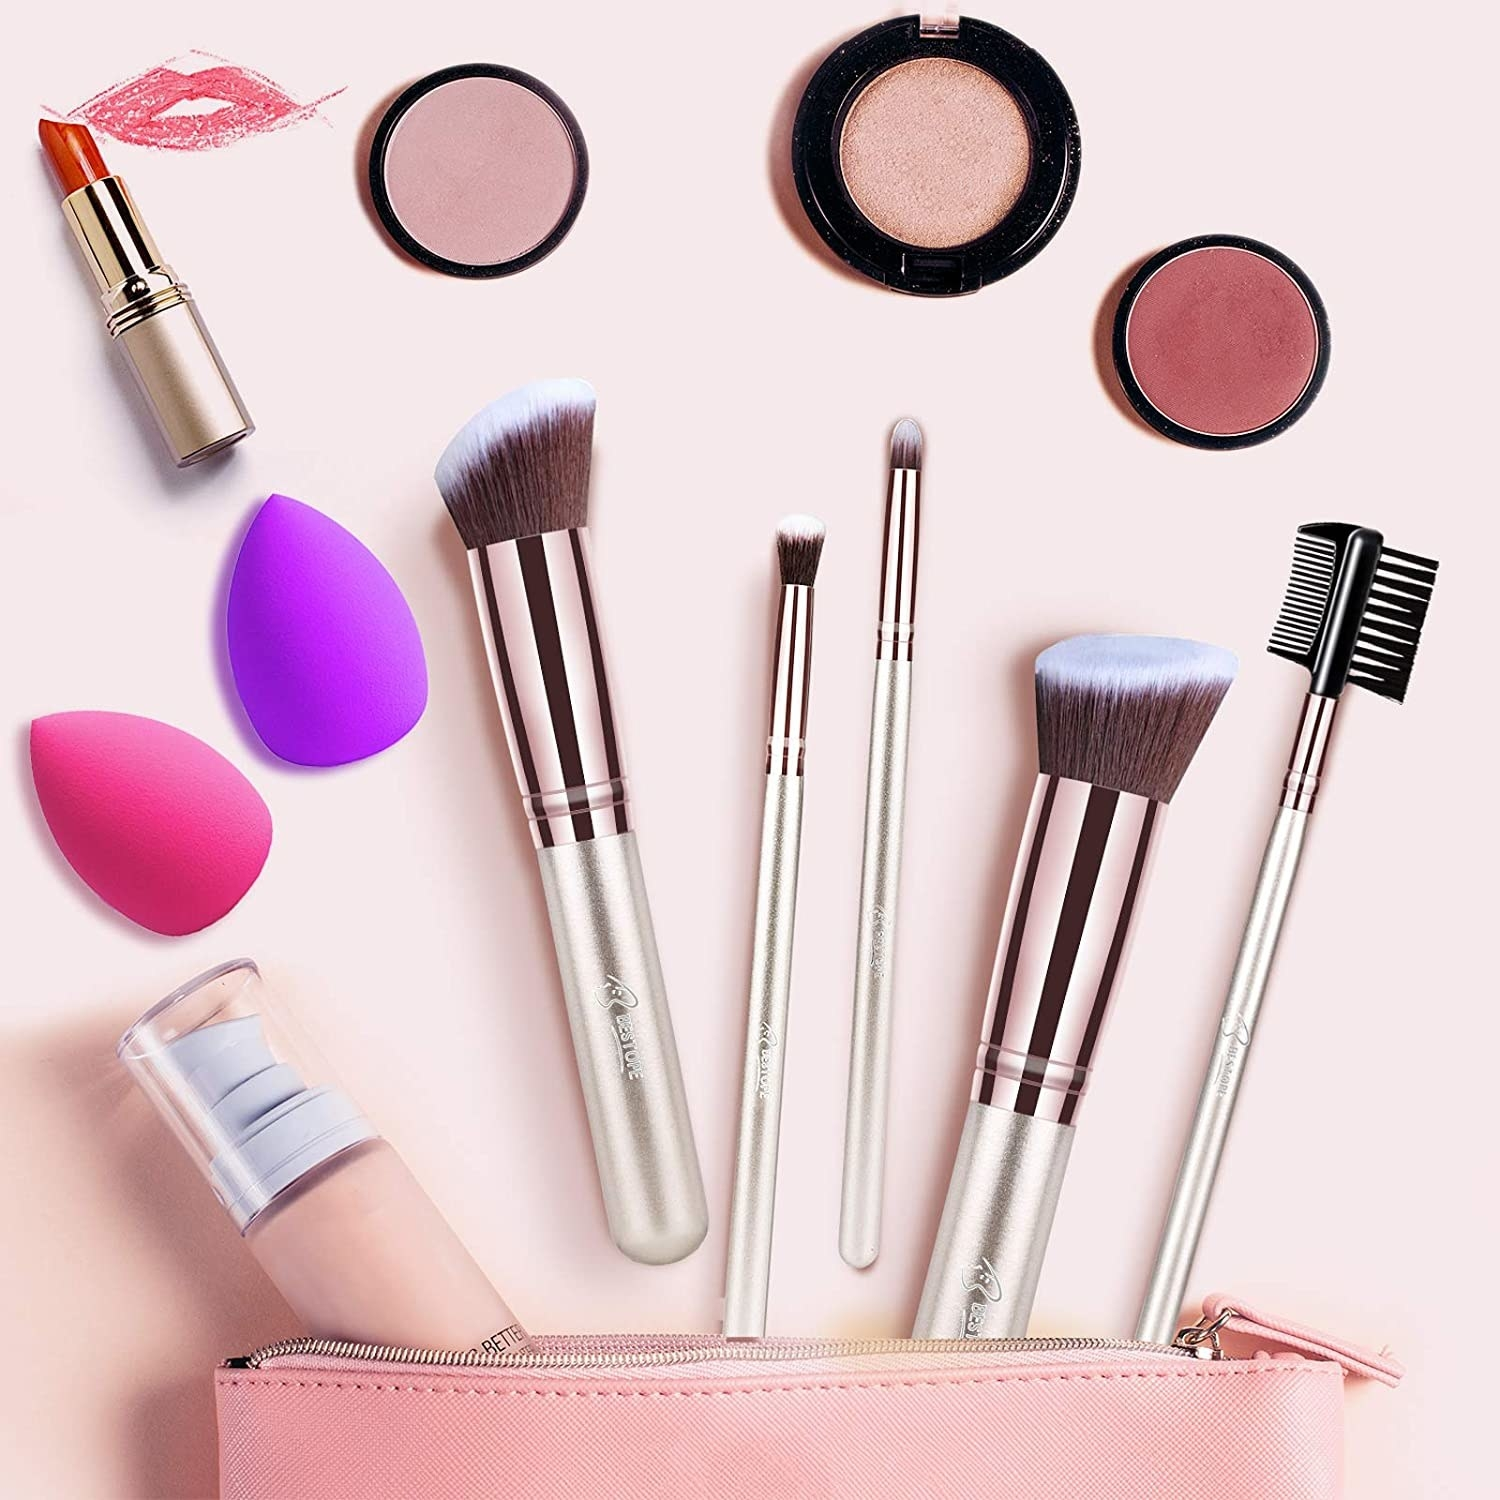 the brushes with makeup next to a bag